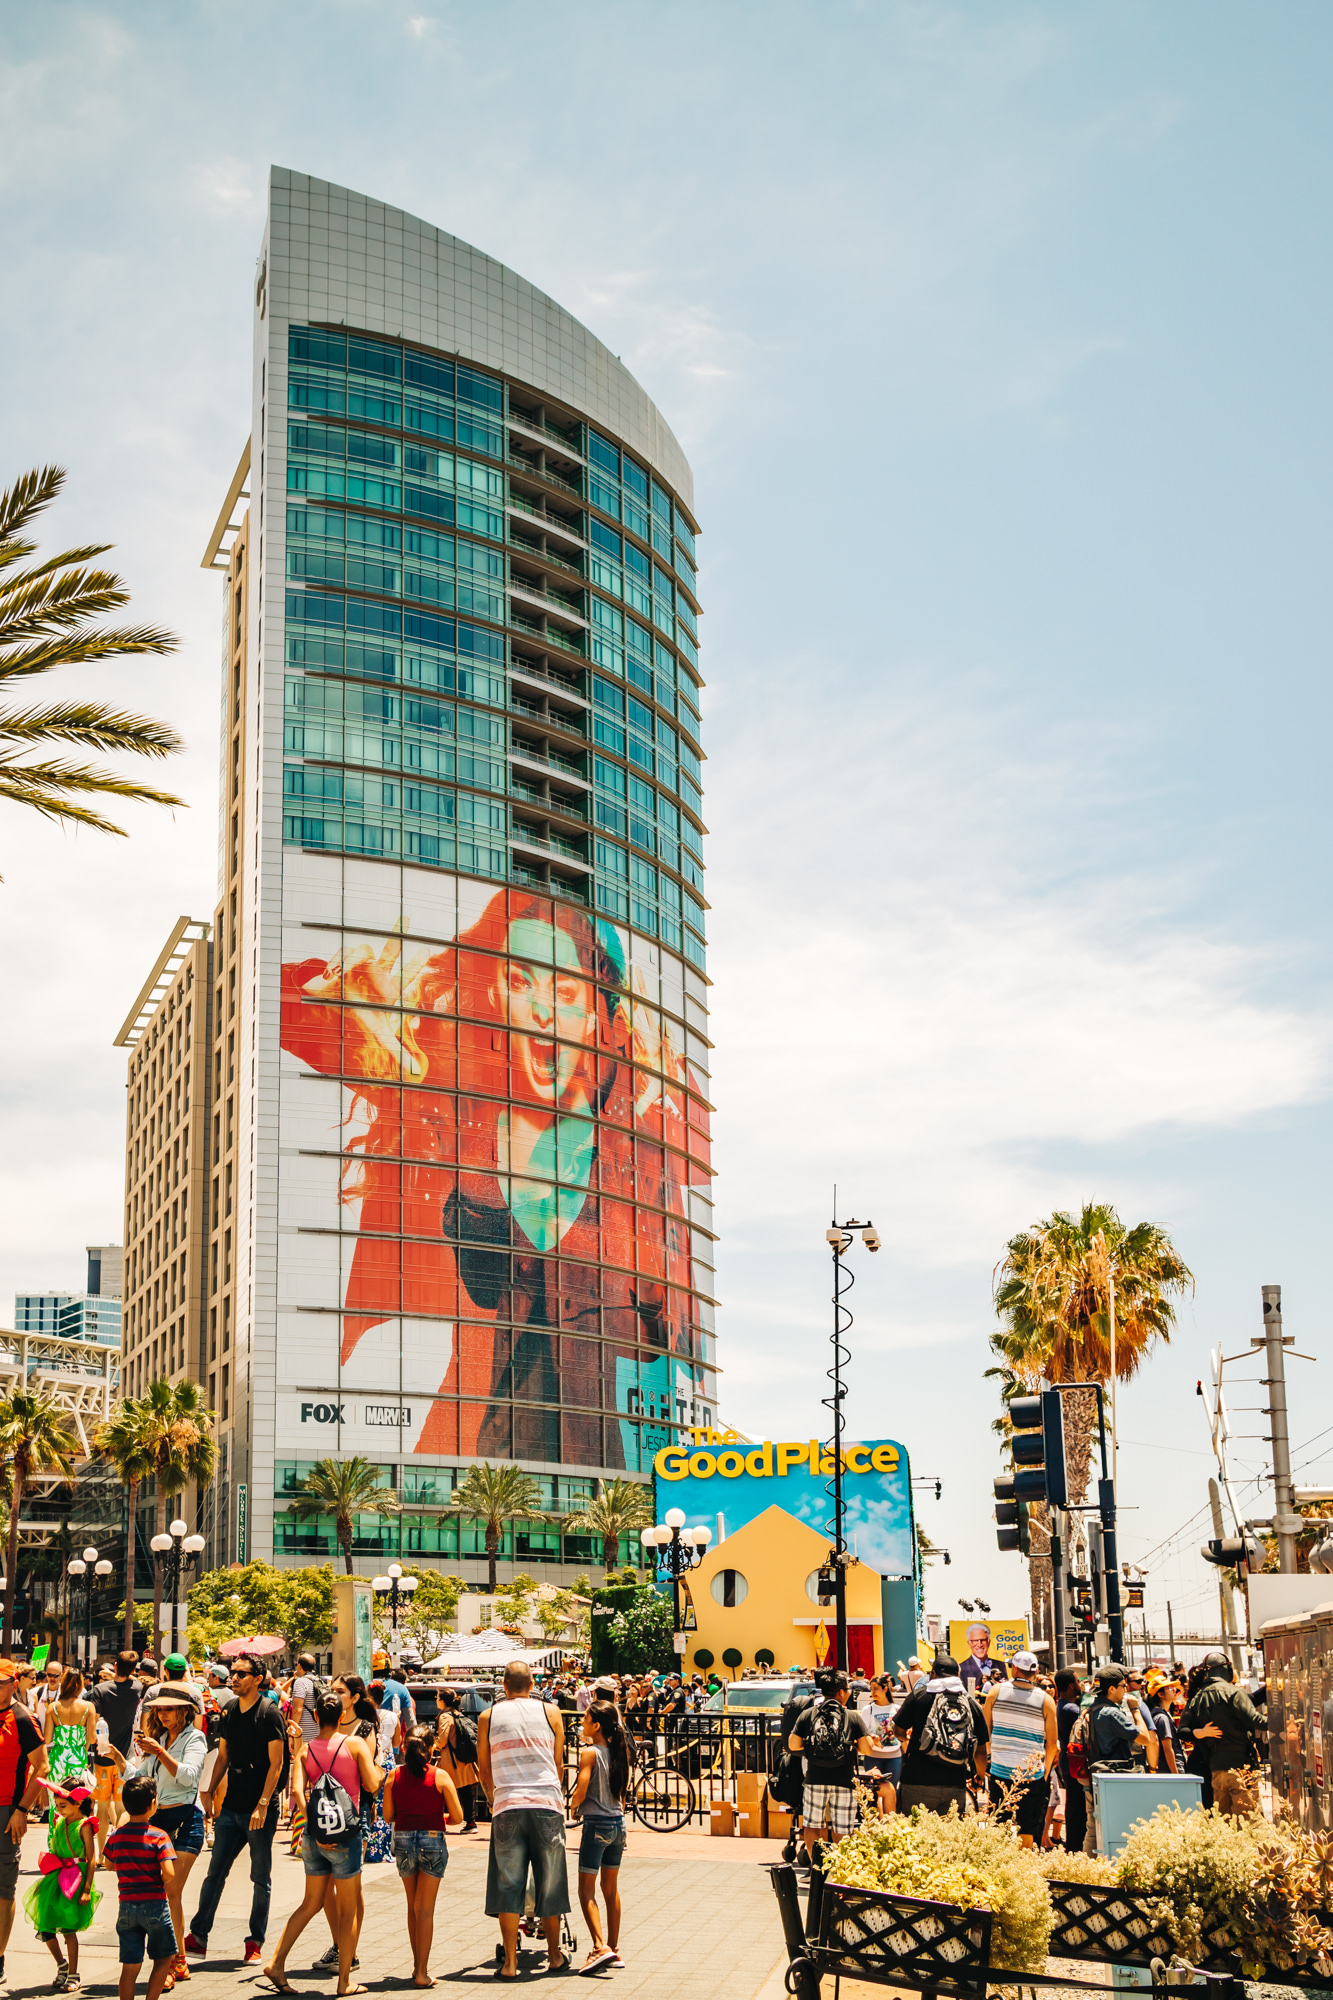 2018 Comic Con Downtown San Diego